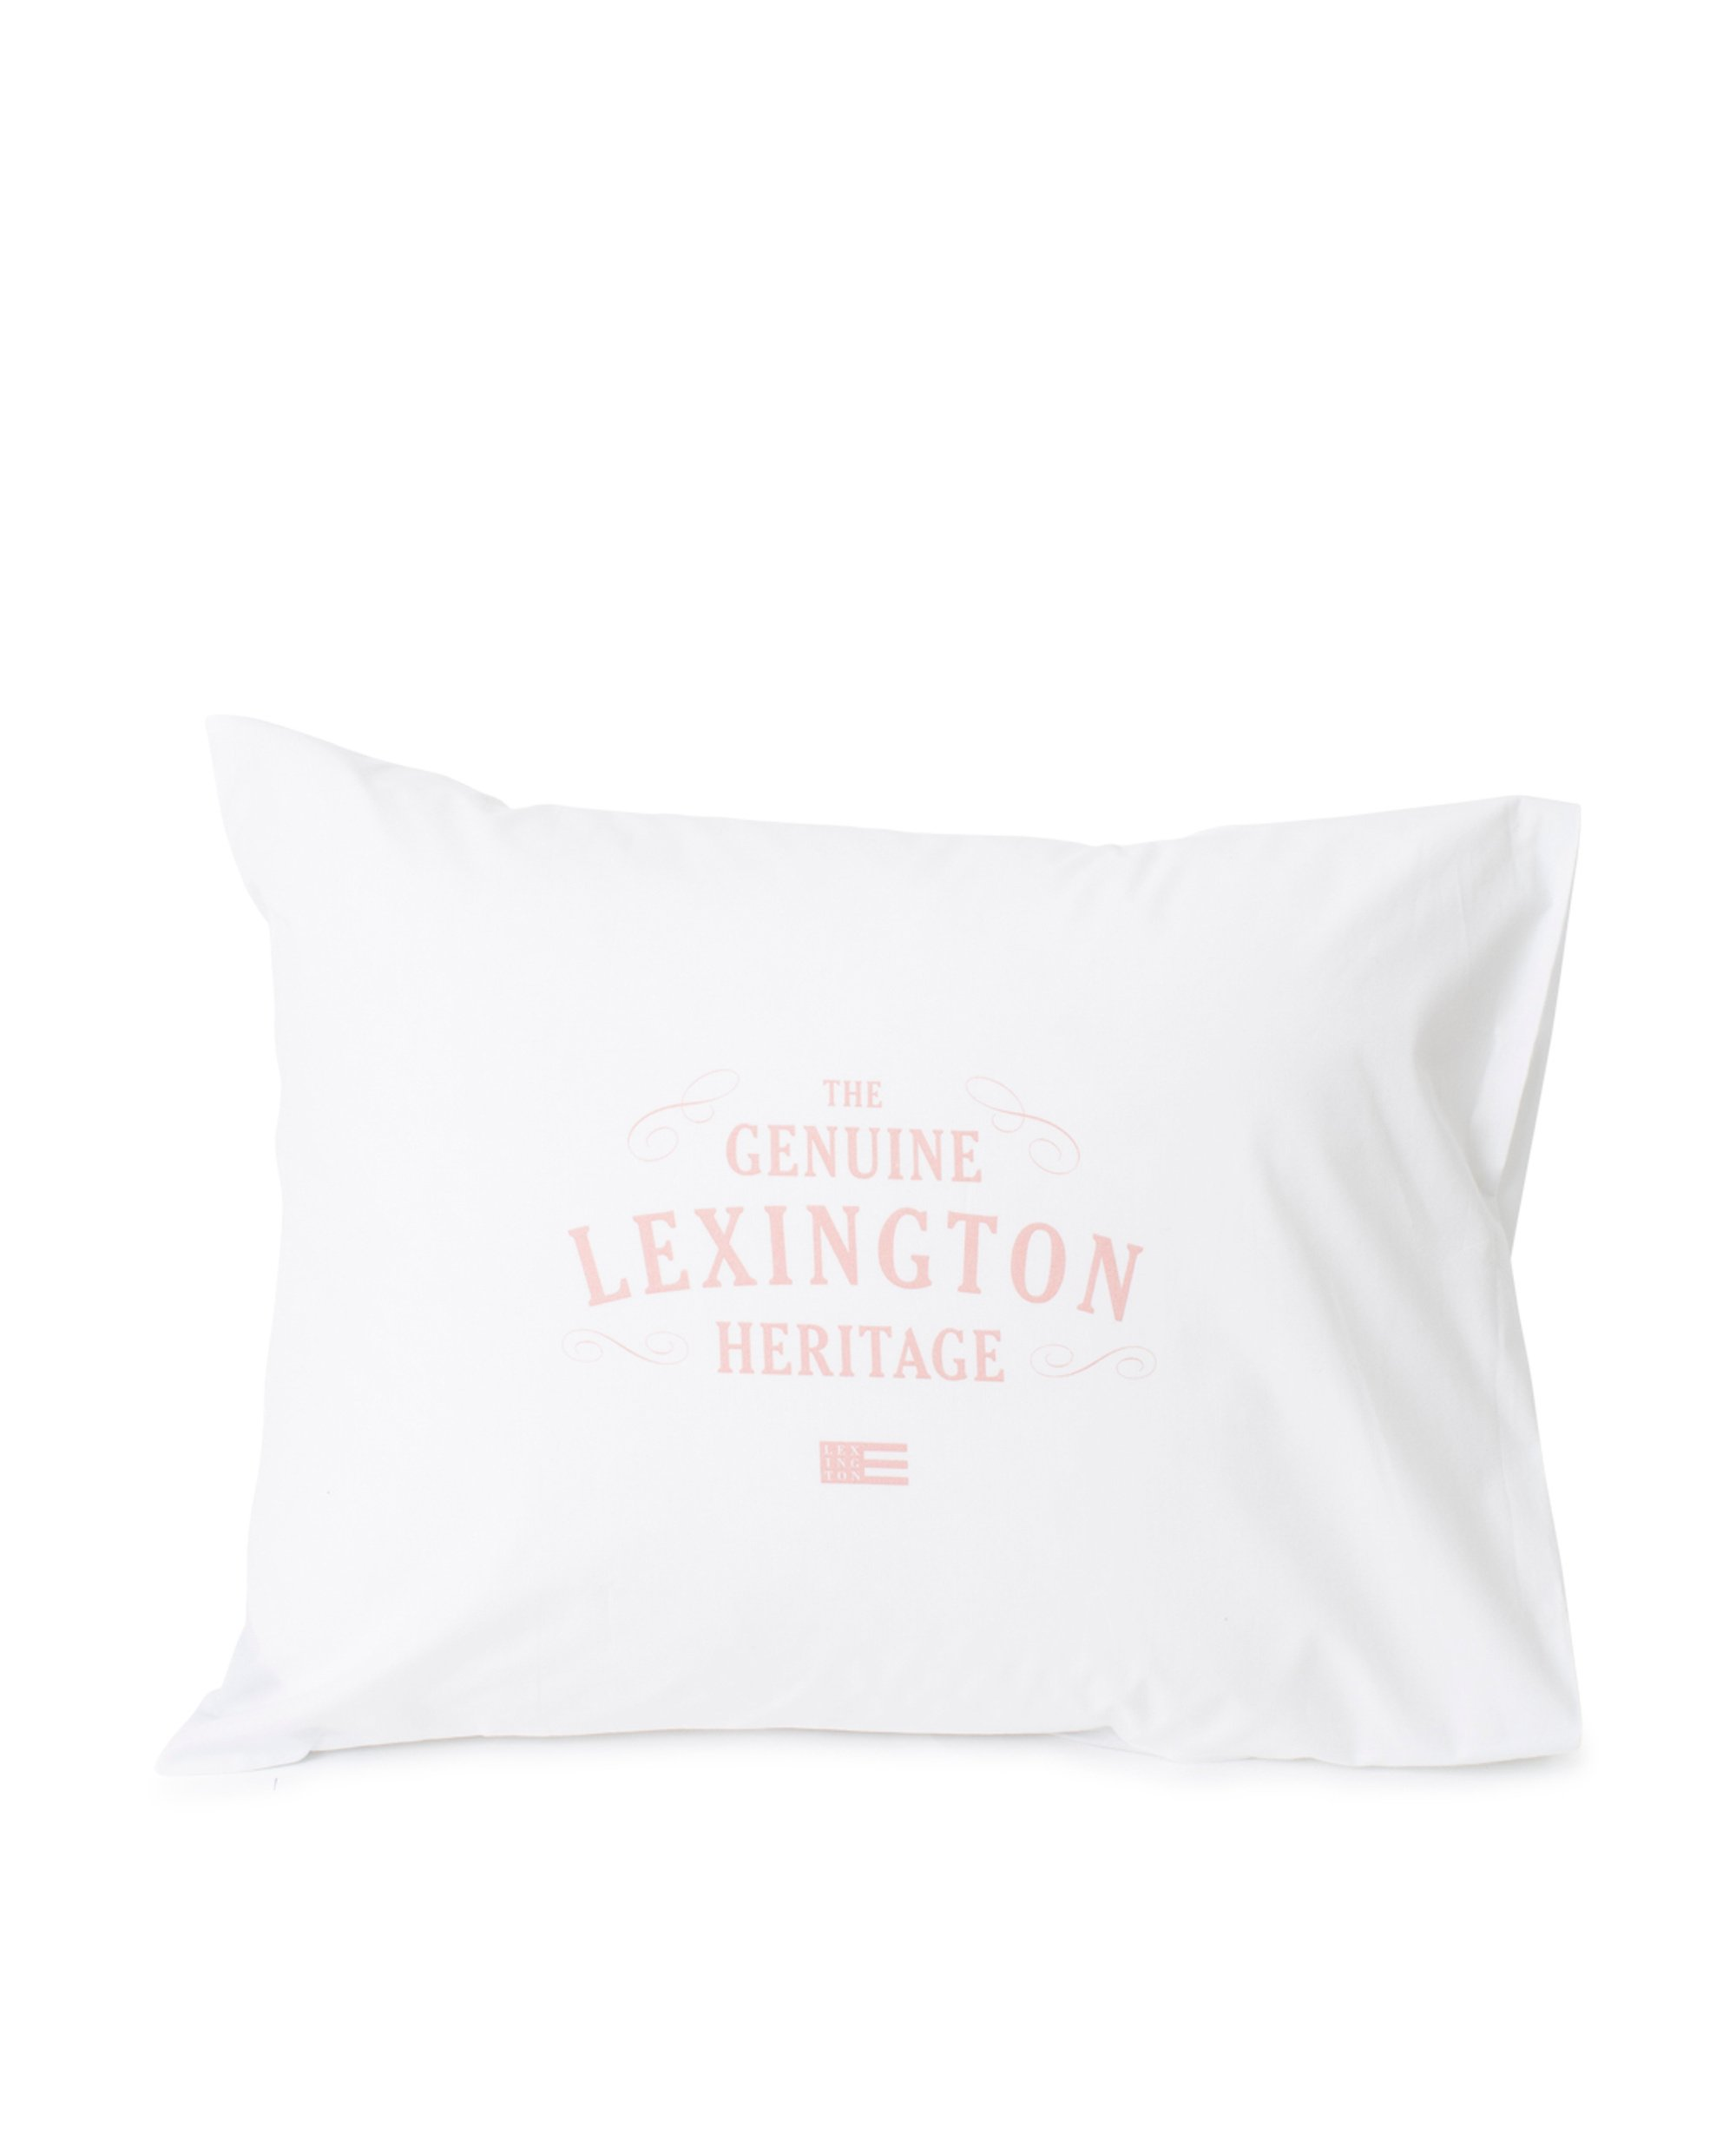 Lexington Printed Cotton Poplin Pillowcase, White/Pink